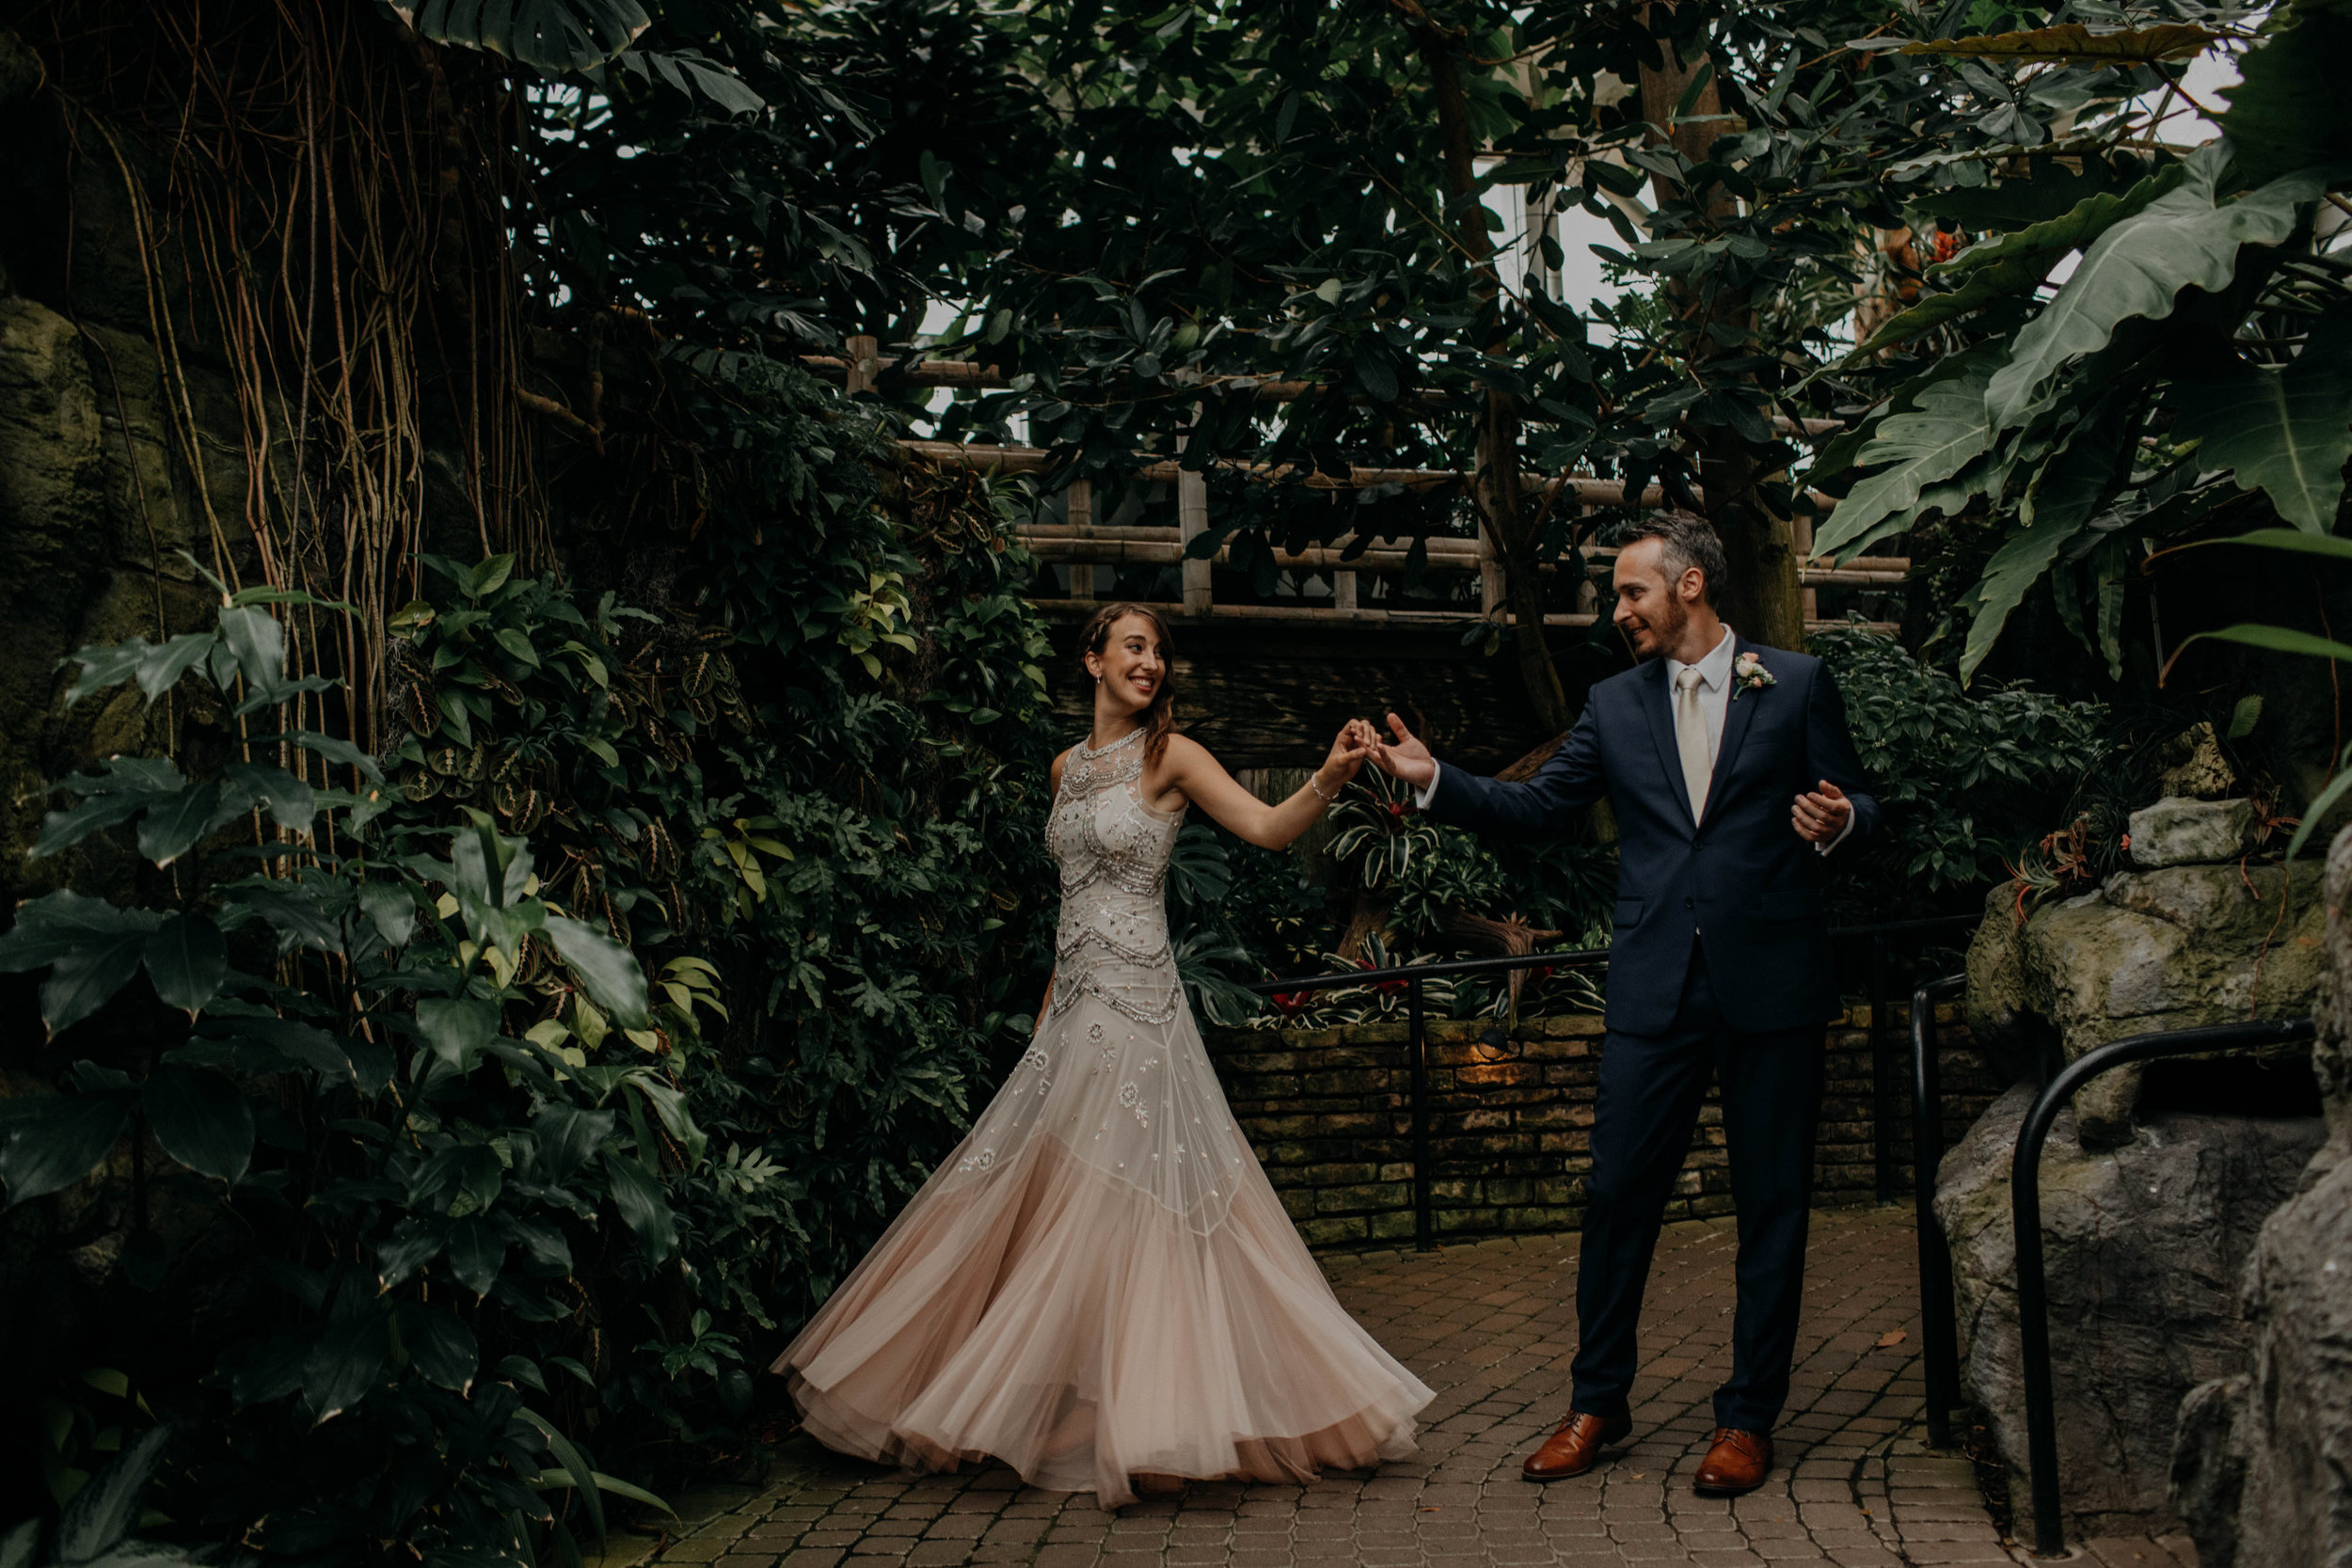 franklin park conservatory wedding columbus ohio wedding photographer grace e jones photography139.jpg